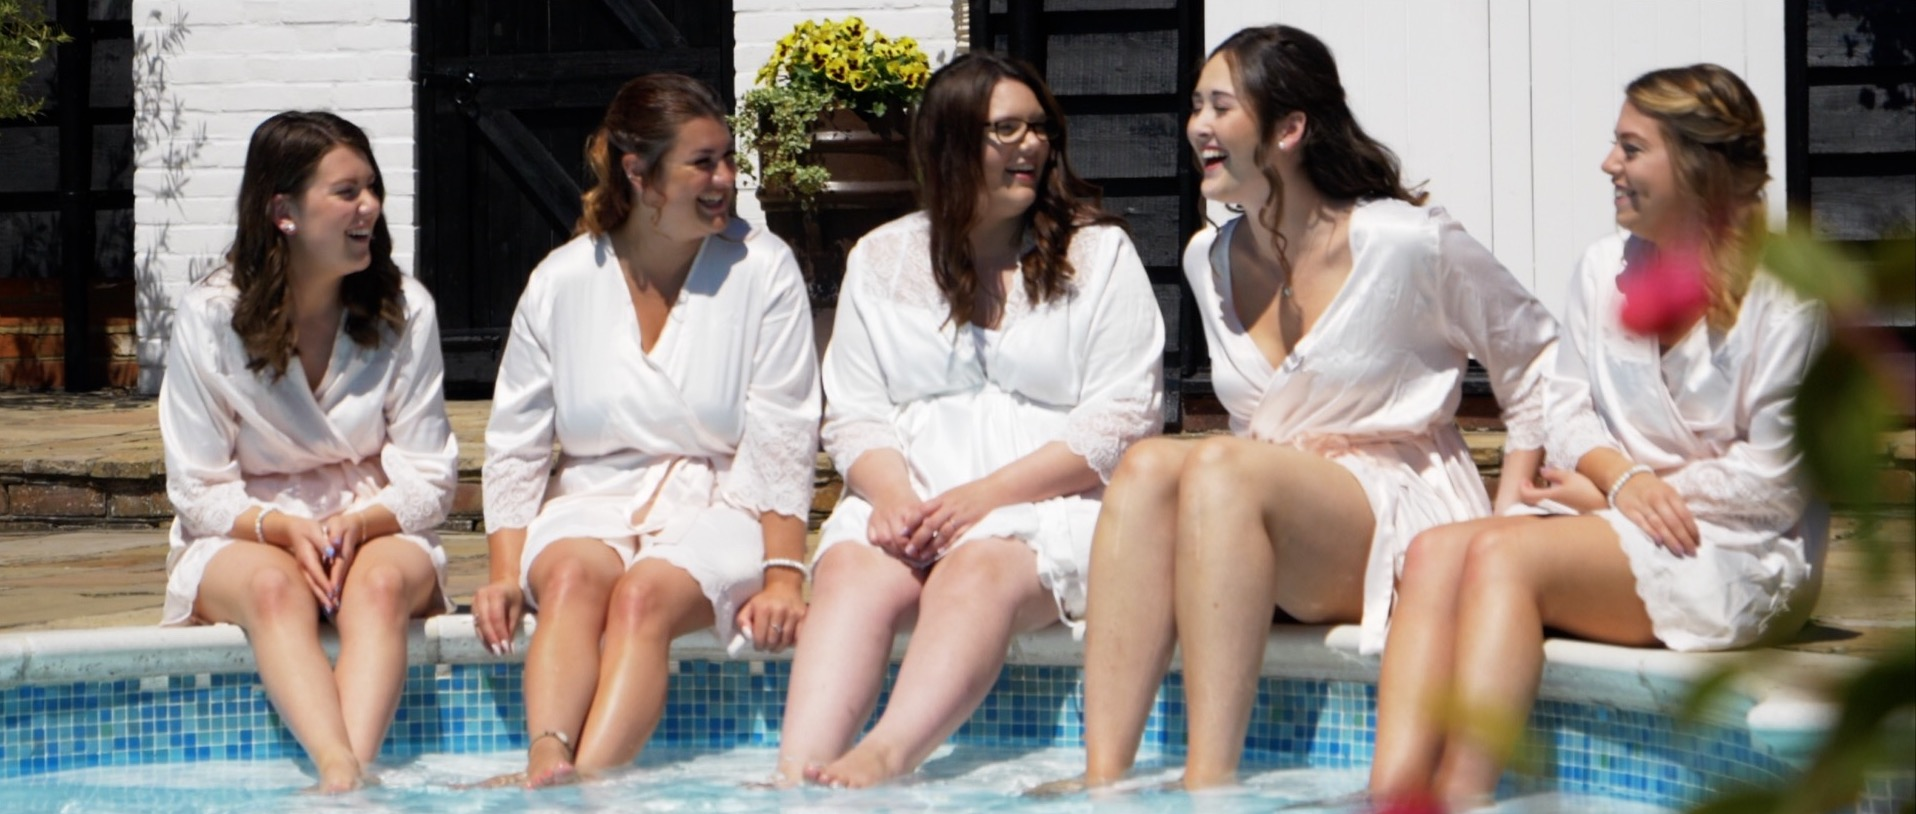 Bridal Preparation Pool side at High House Essex.jpg